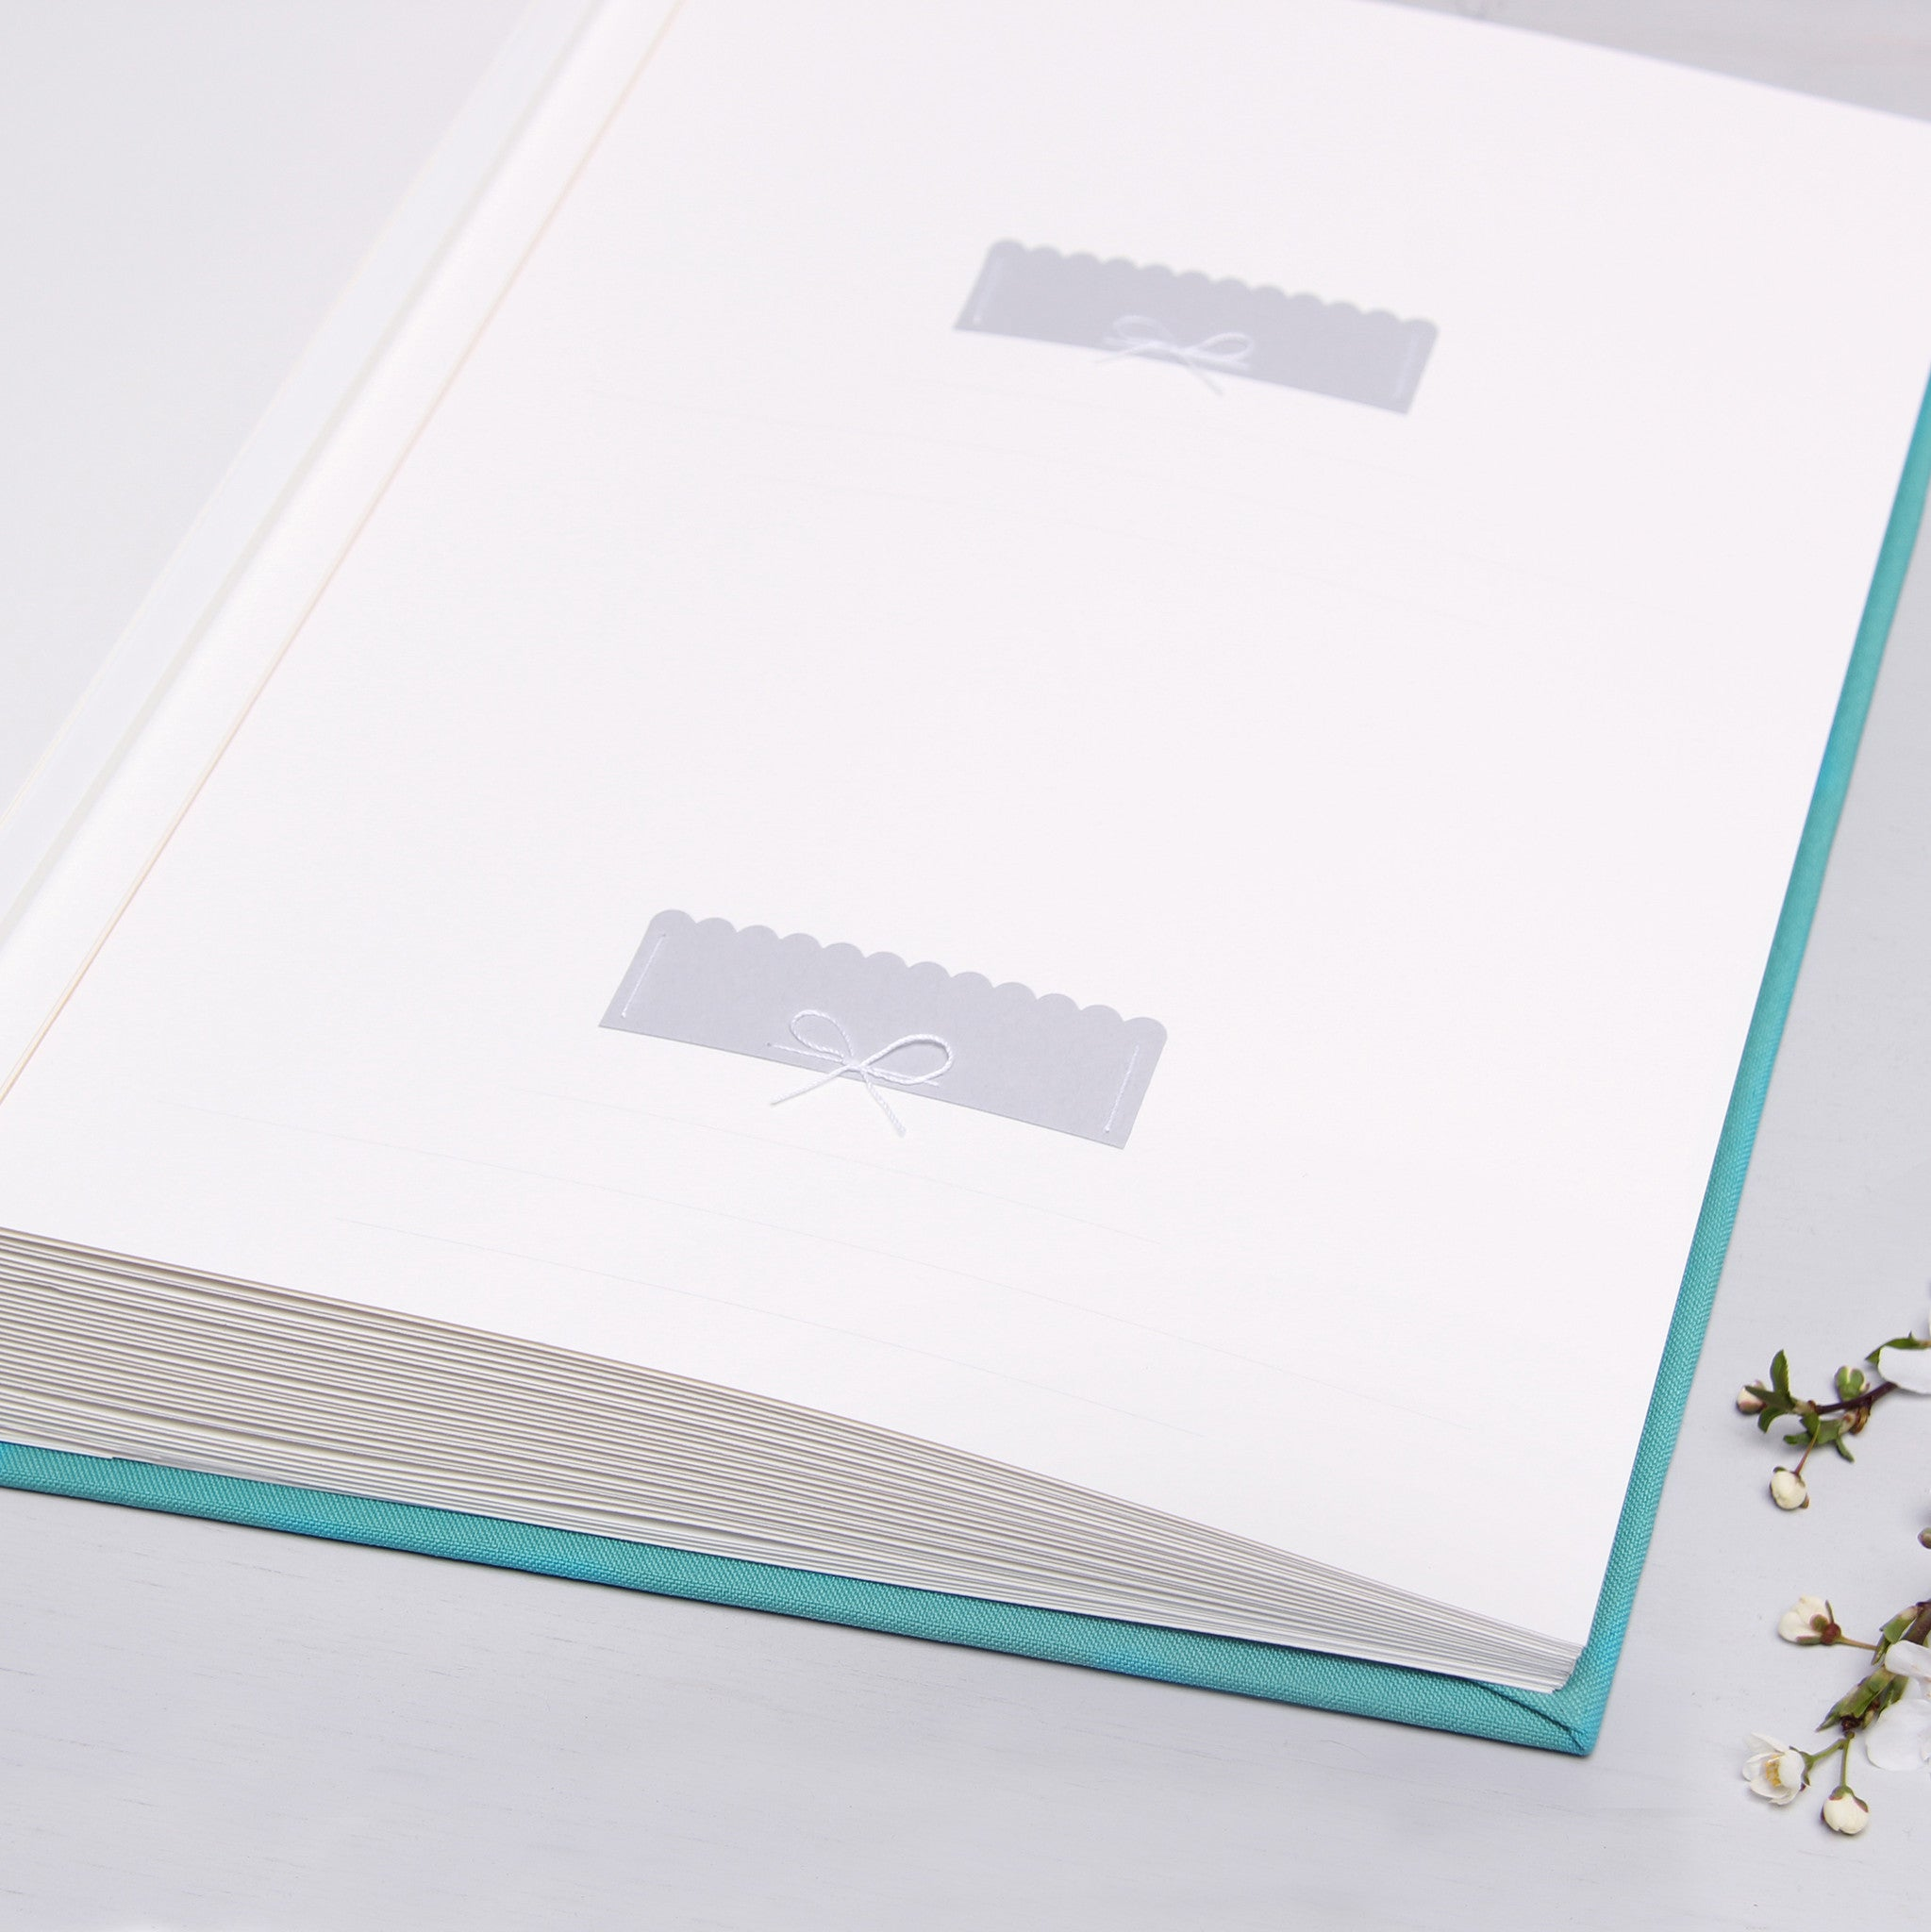 Instax Wedding Guest Book Album Levander with Silver Lettering - Liumy